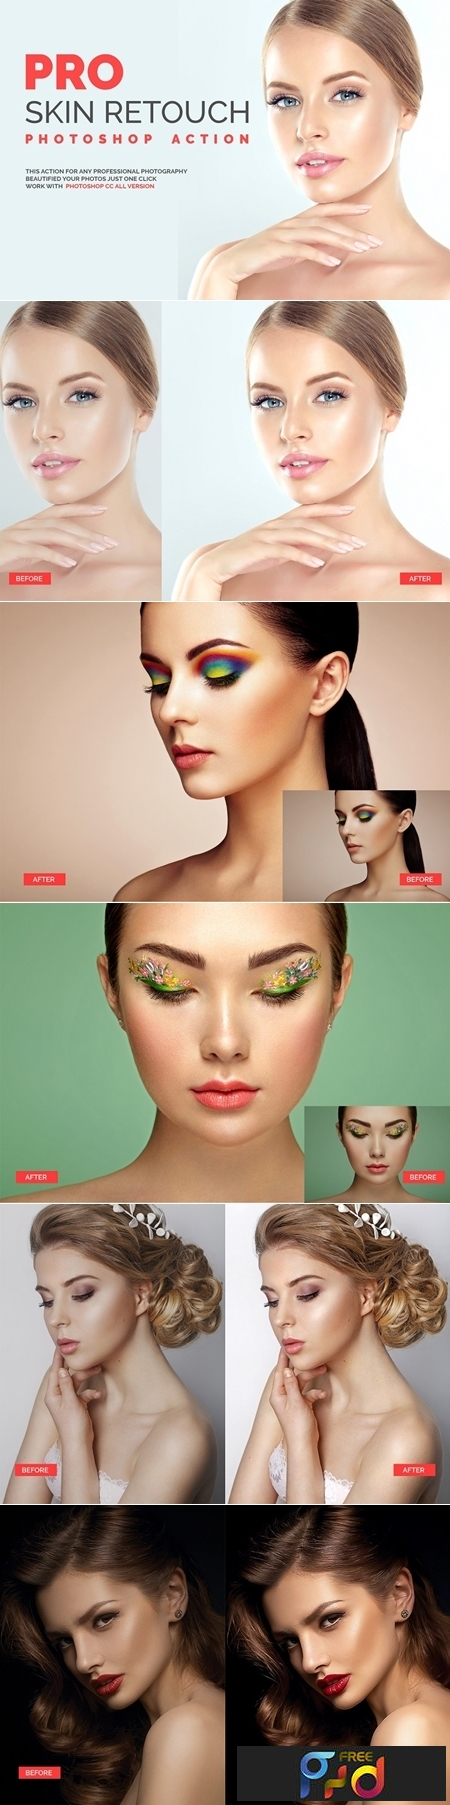 PRO Skin Retouch Photoshop Action 1